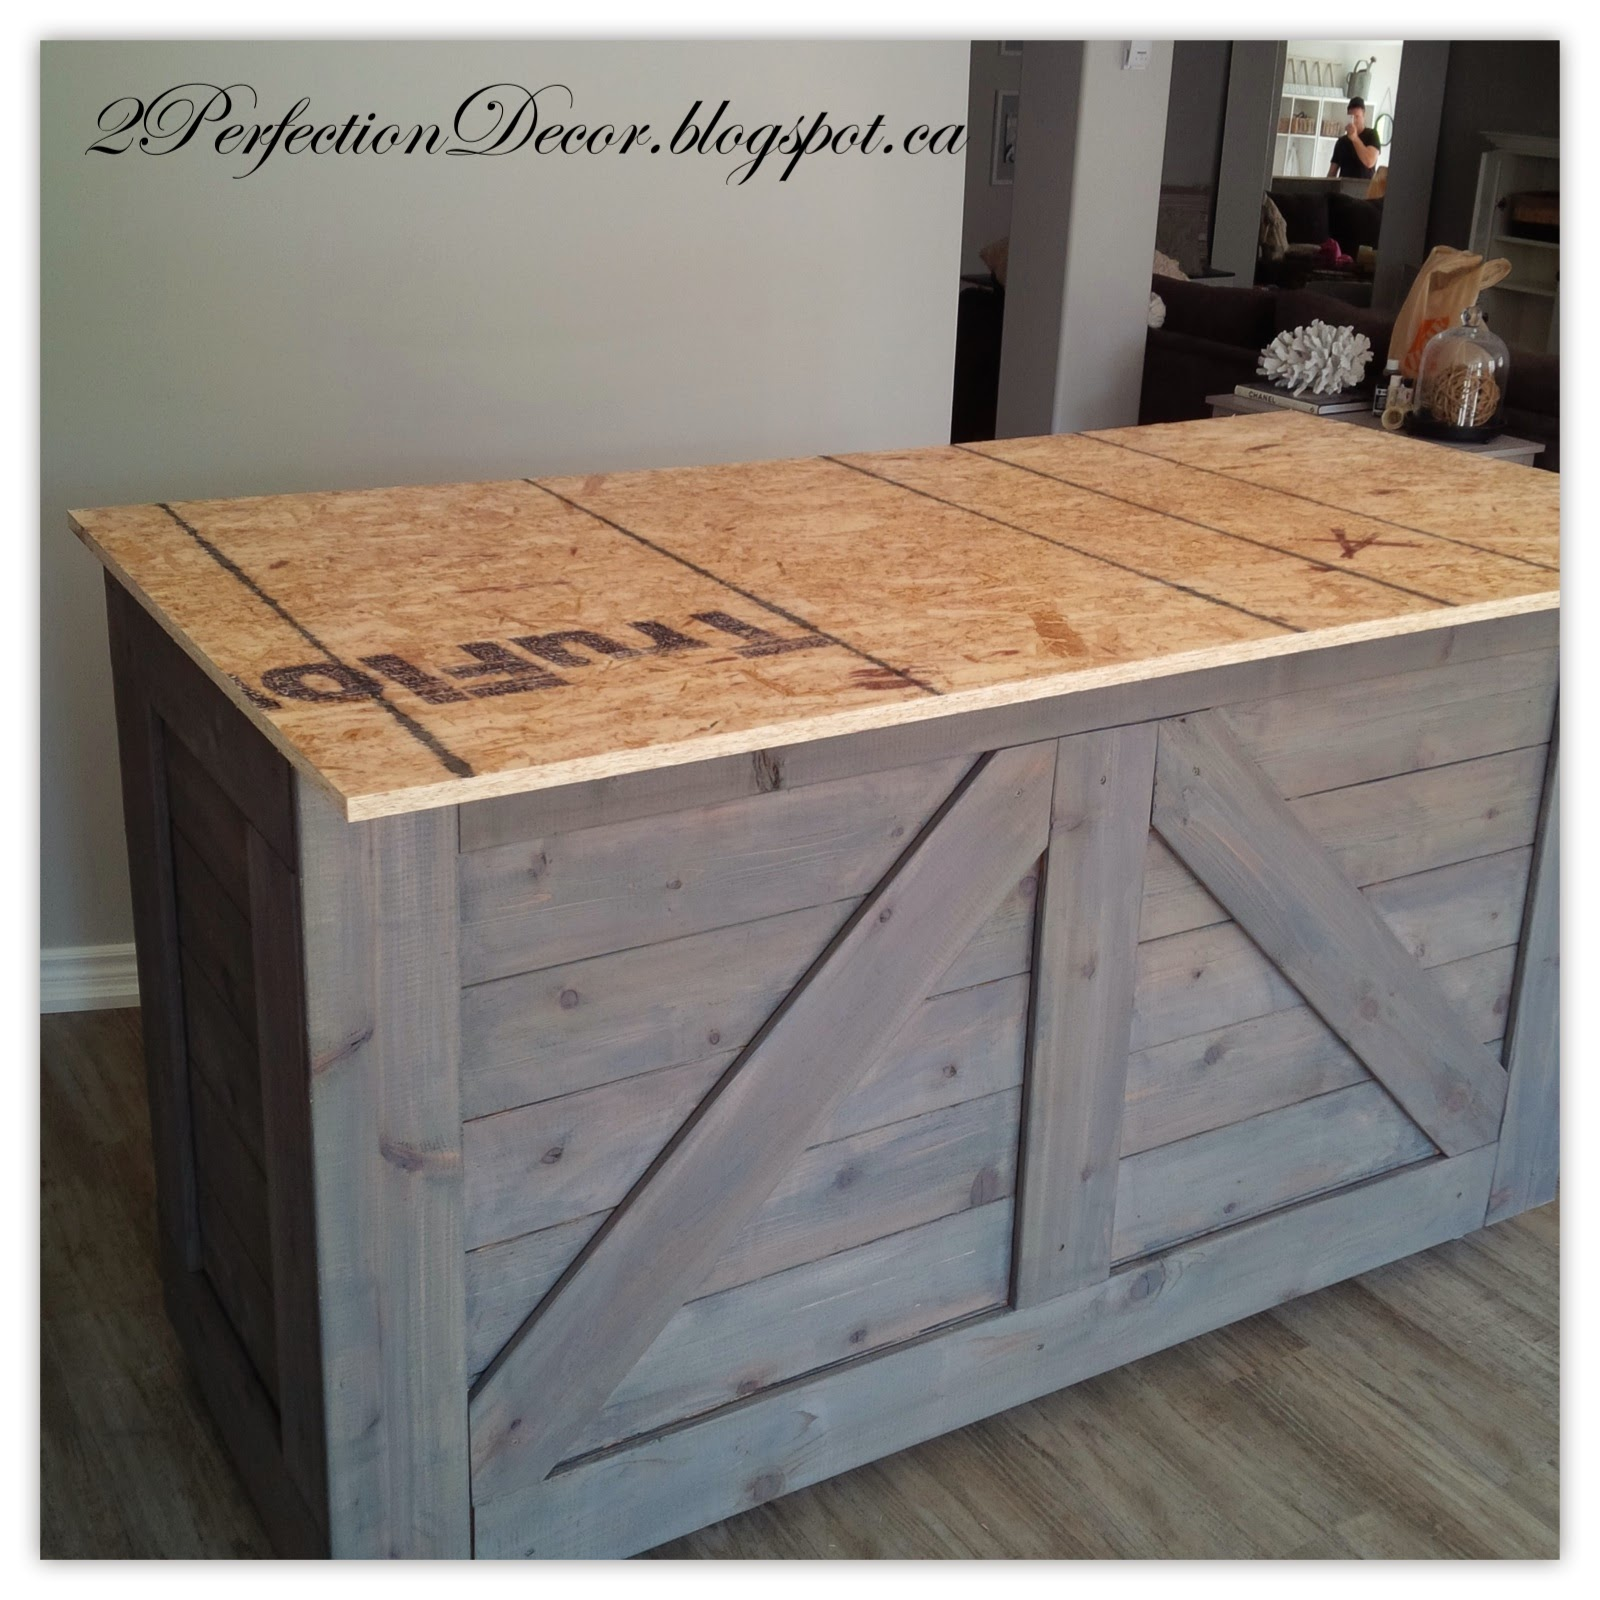 Remodelaholic | IKEA Hack Rustic Bar with Galvanized Metal Top